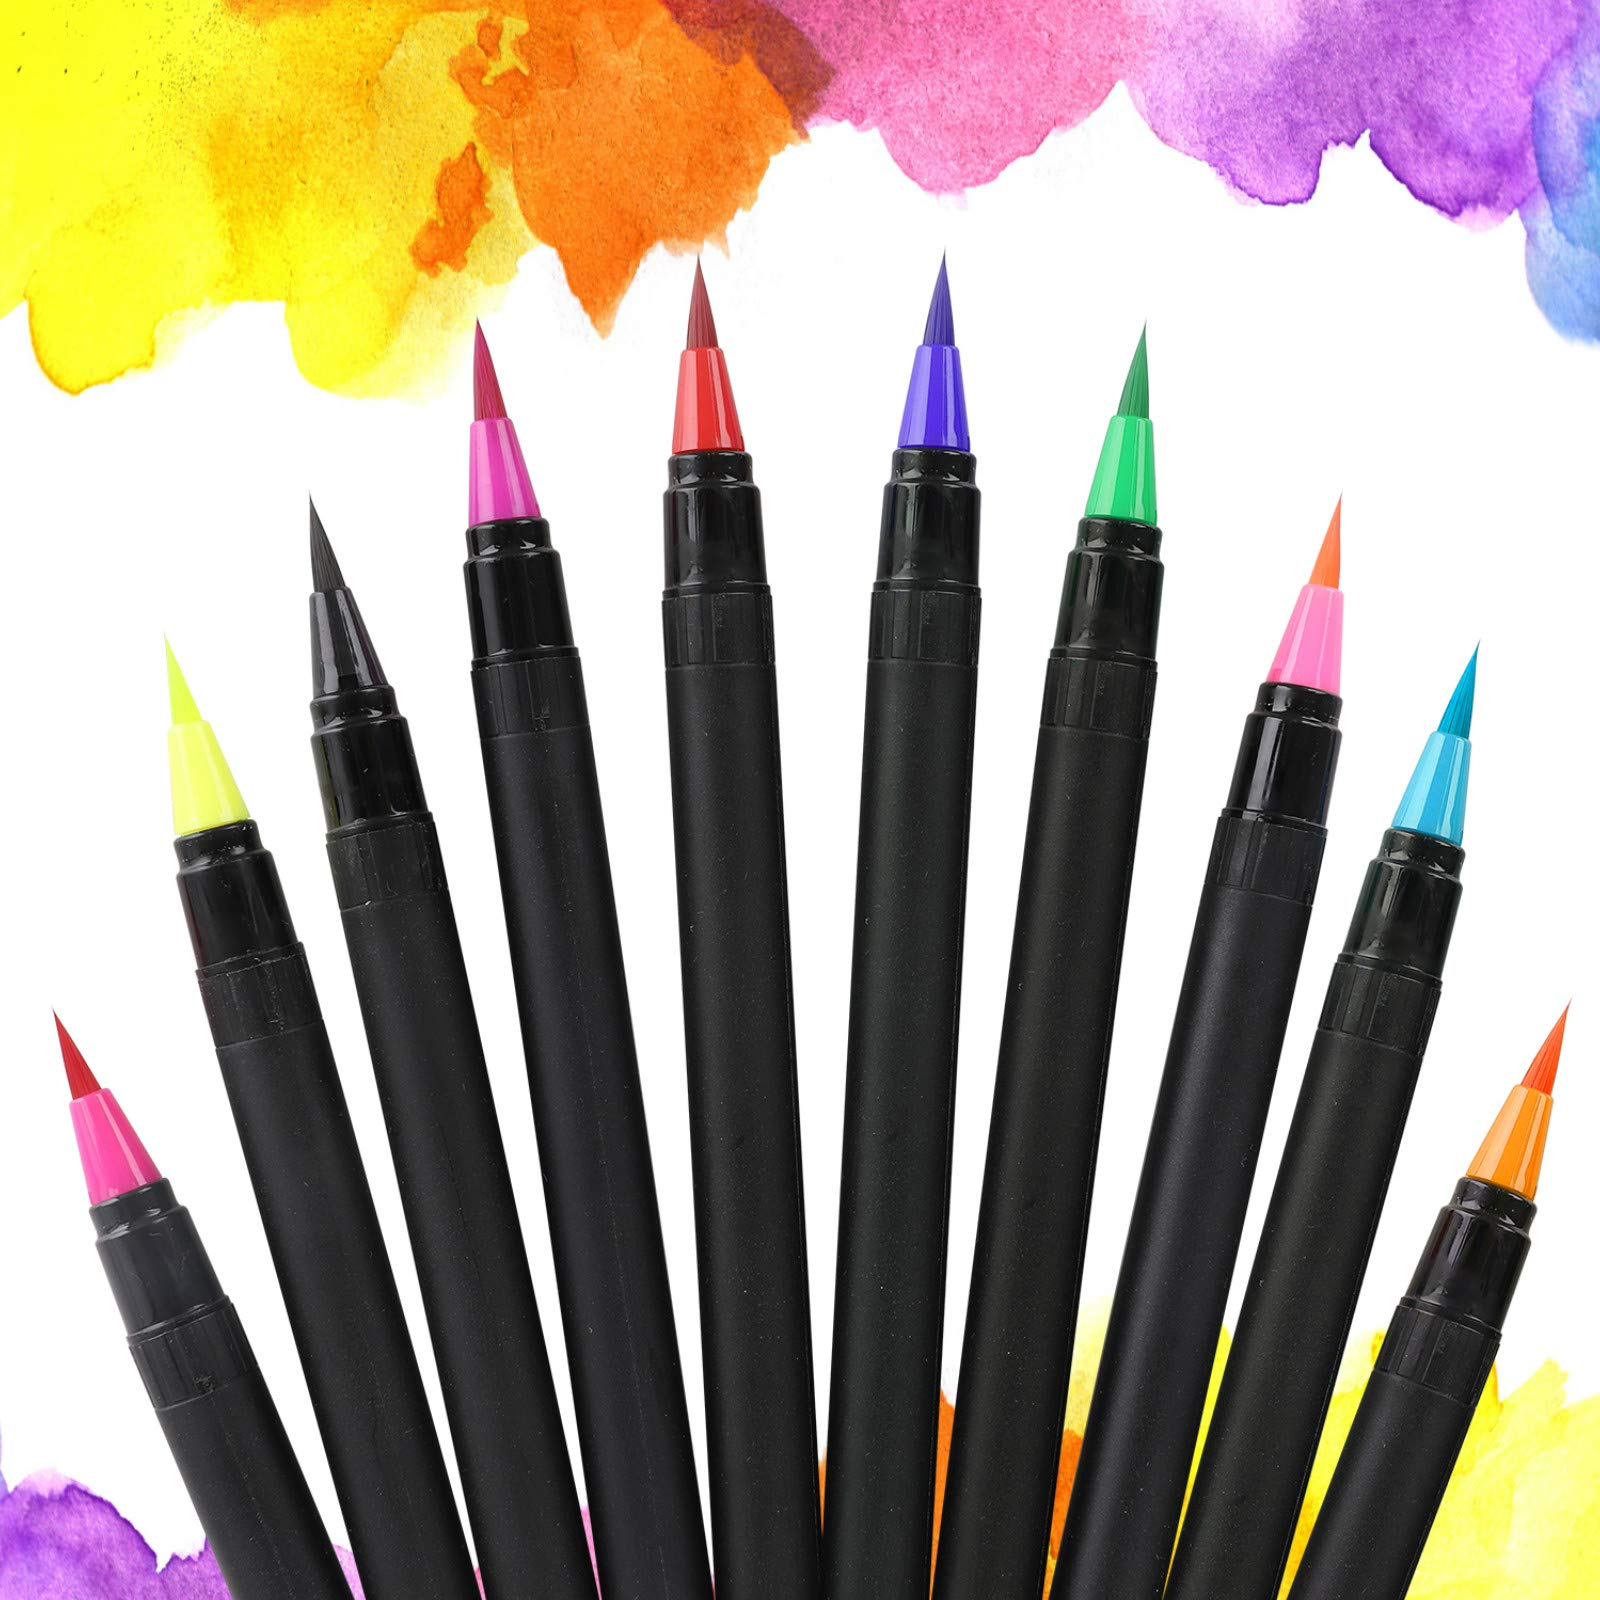 Food Coloring Marker Pens, Nomeca 10Pcs Food Grade Edible Markers Food Writers for Decorating Fondant, Cakes, Cookies, Easter Eggs Painting Drawing Writing - Flexible Brush Tip, 10 Colors